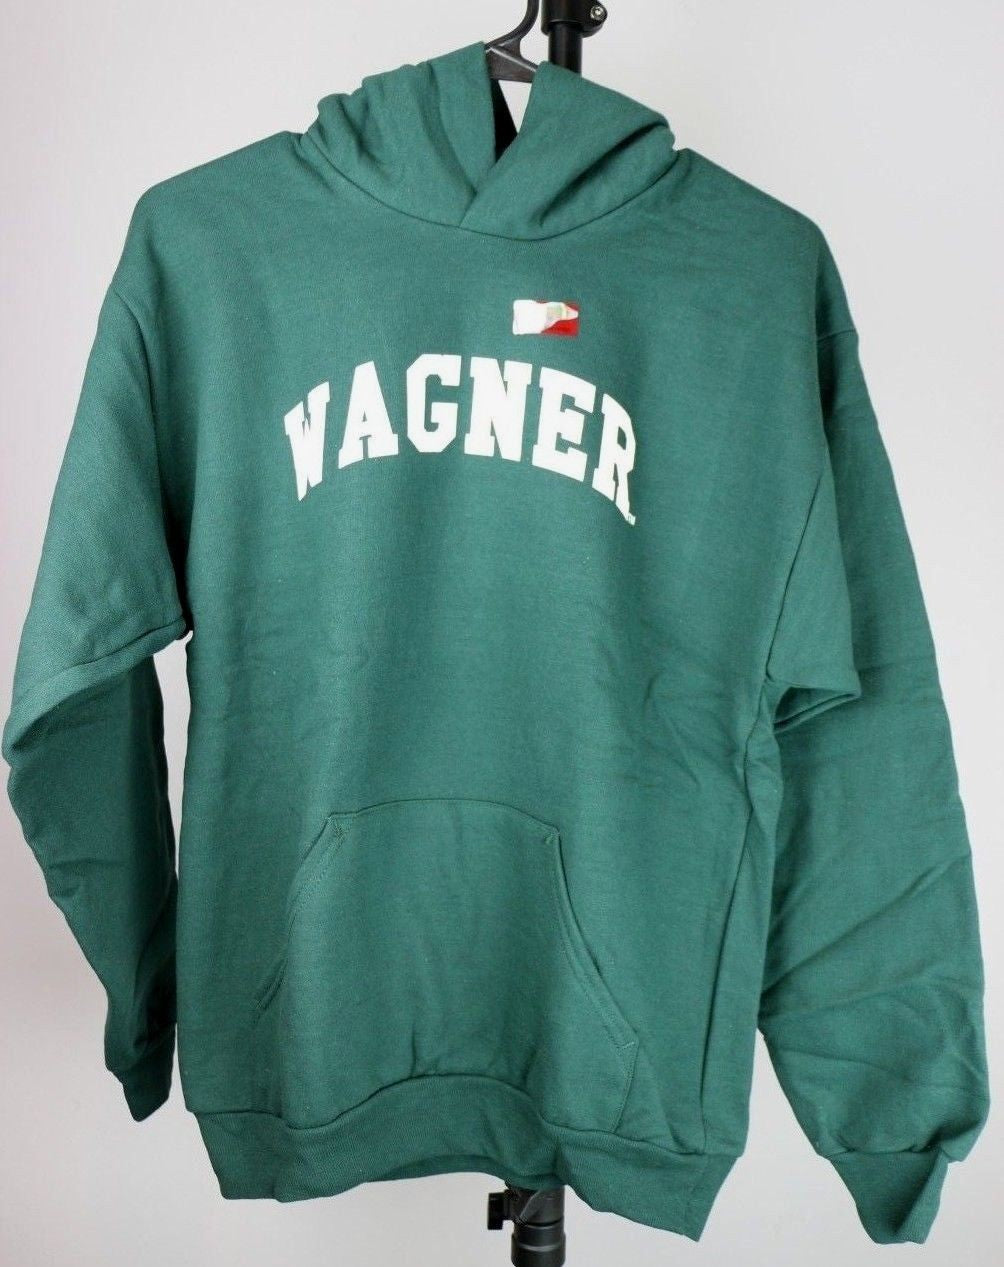 Wagner Seahawks Youth Hooded Sweatshirt (Youth XL, Dark Green) - Fazoom